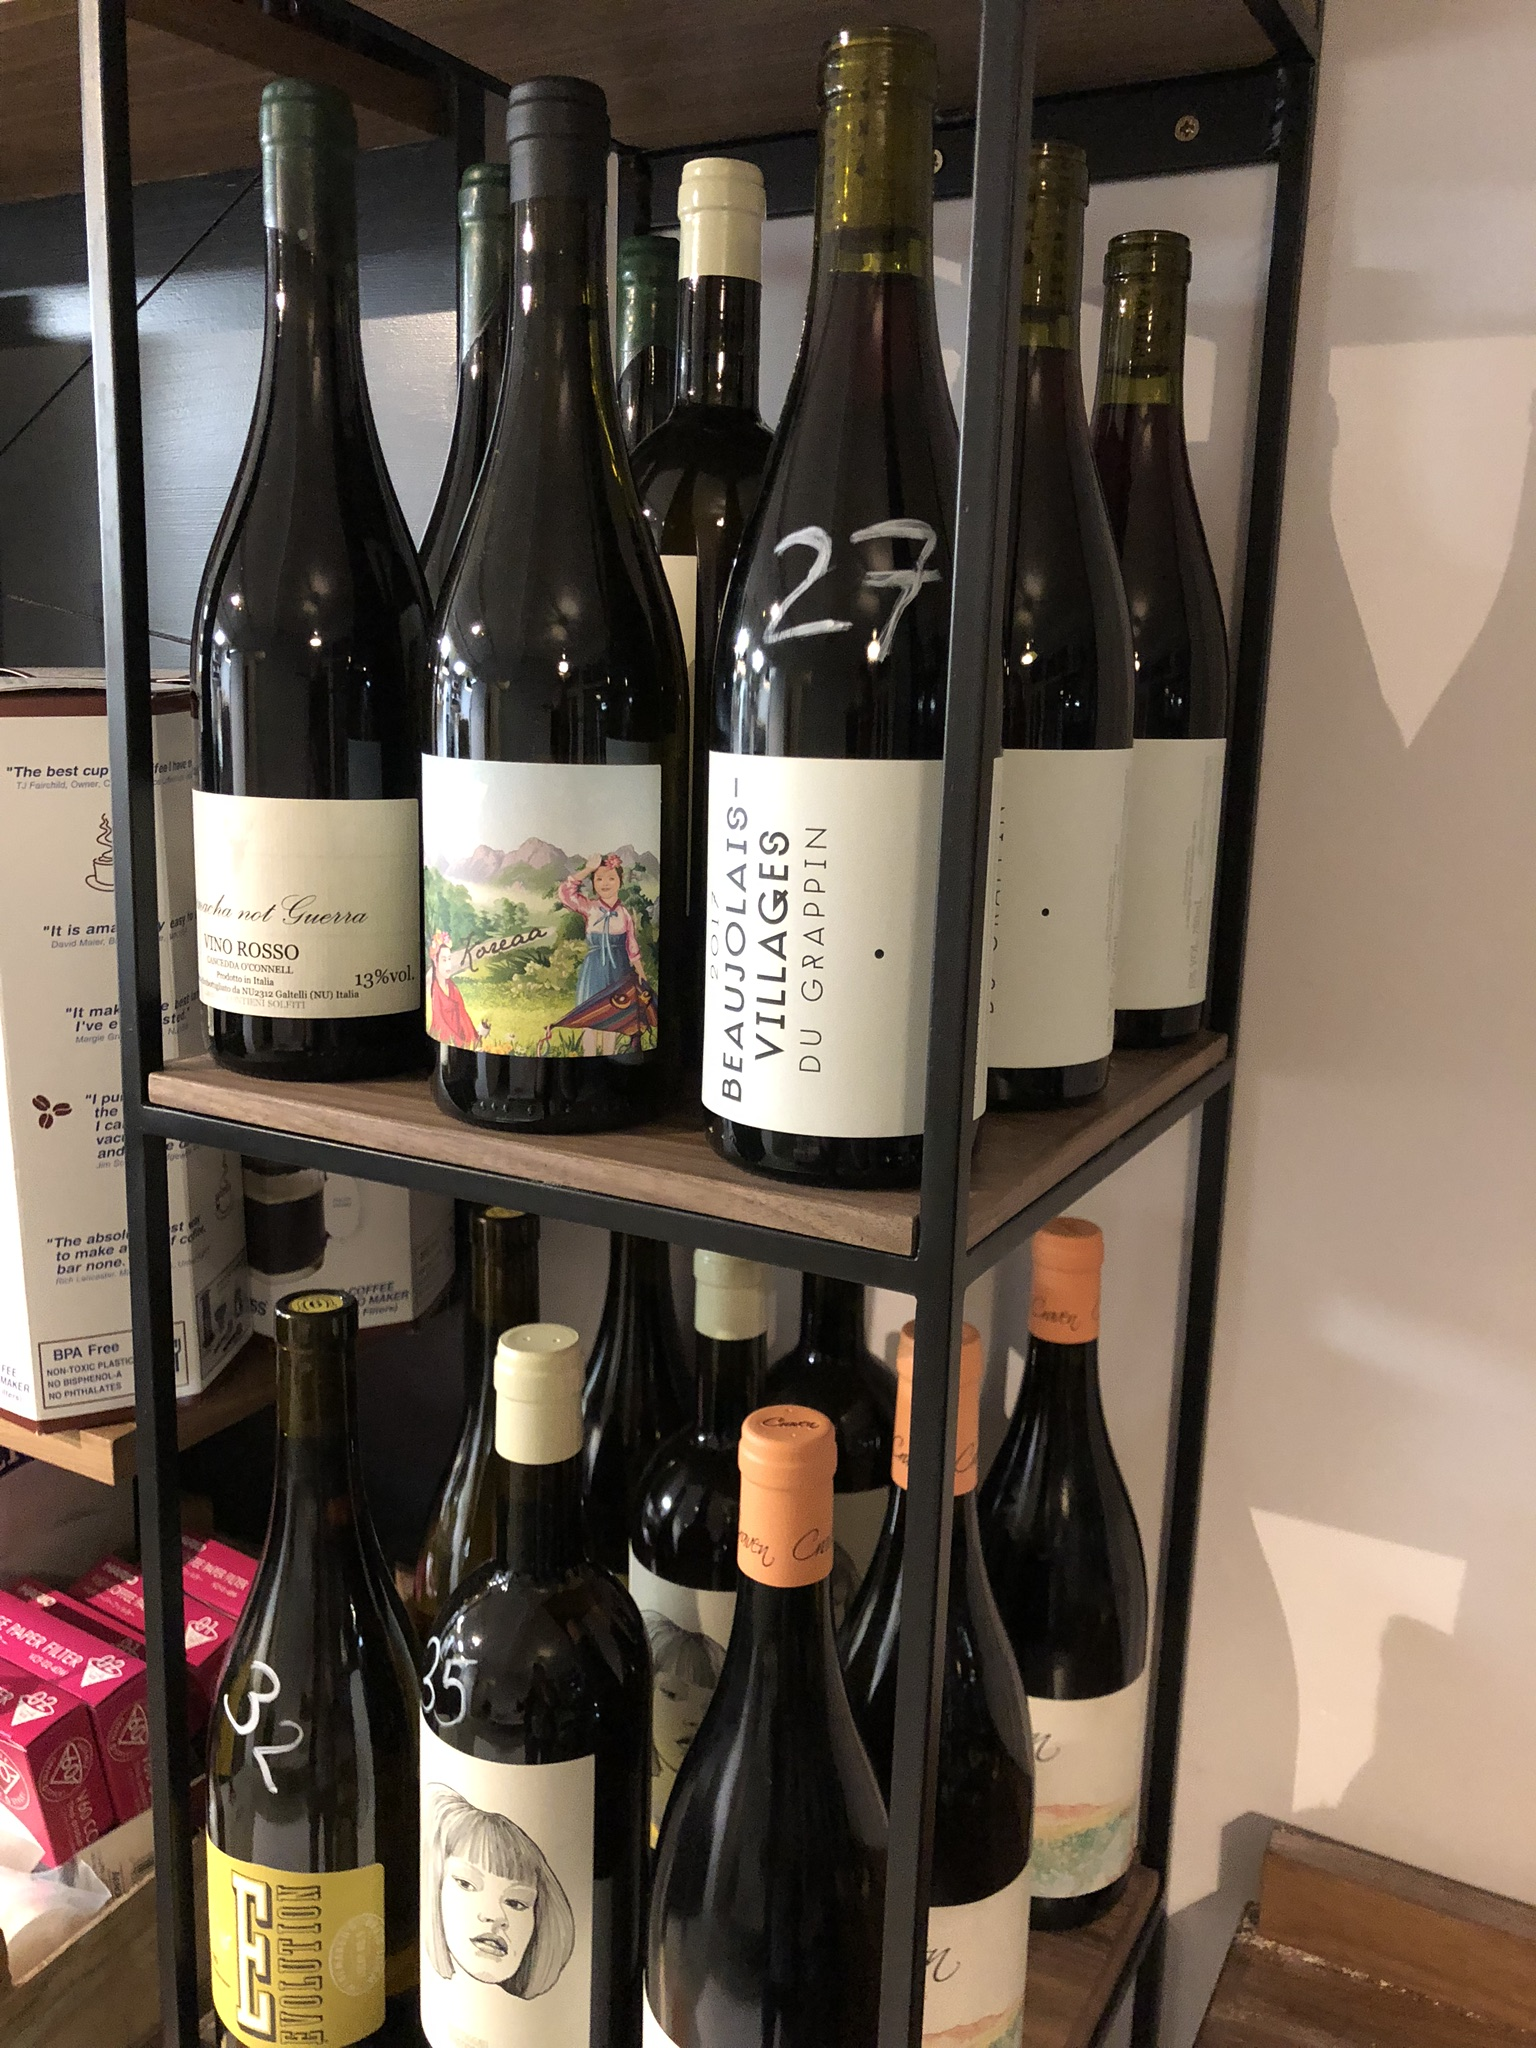 Delicious low intervention wines